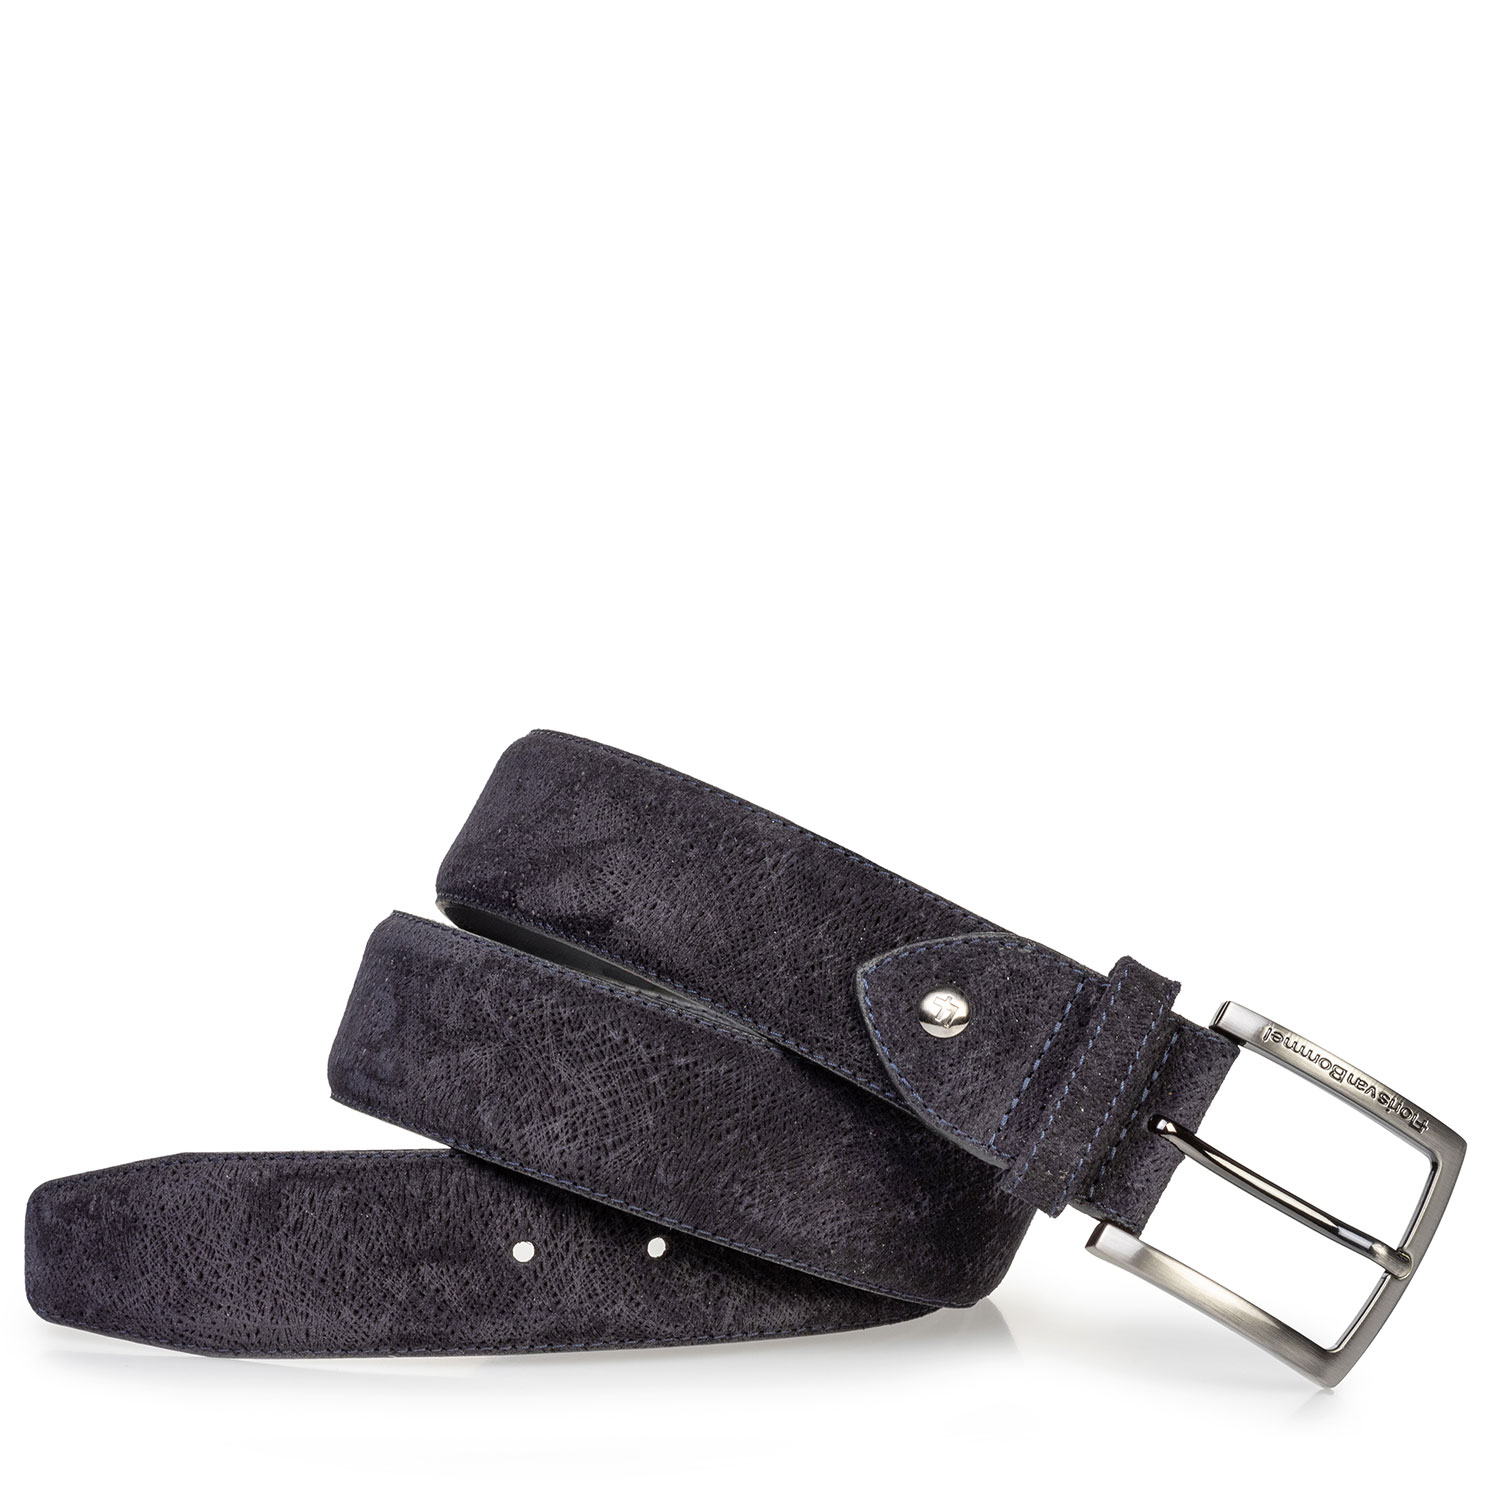 75202/69 - Suede leather belt dark blue